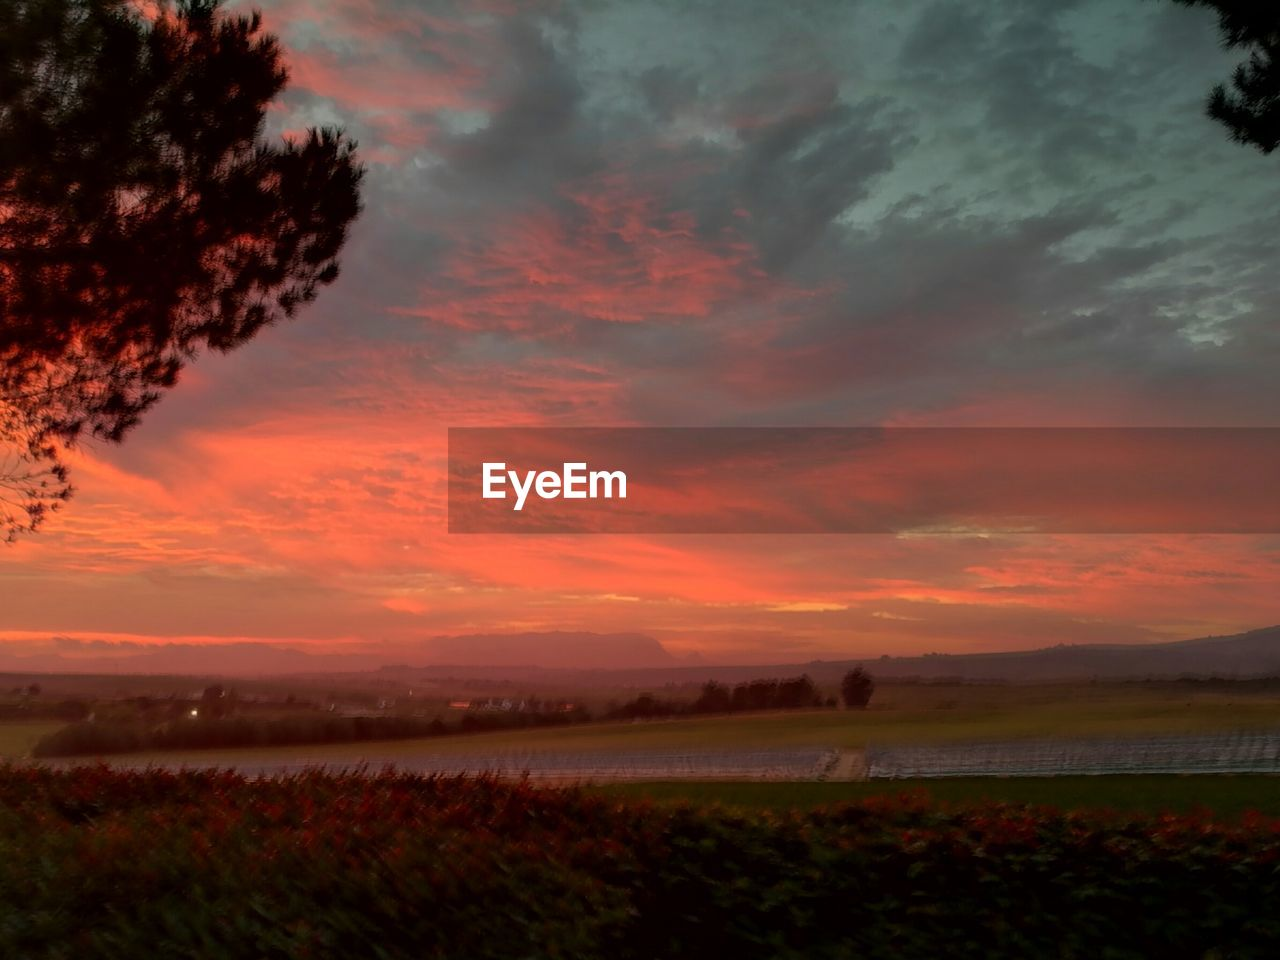 sunset, nature, beauty in nature, tranquility, tranquil scene, scenics, orange color, agriculture, sky, field, rural scene, growth, cloud - sky, landscape, outdoors, no people, tree, water, day